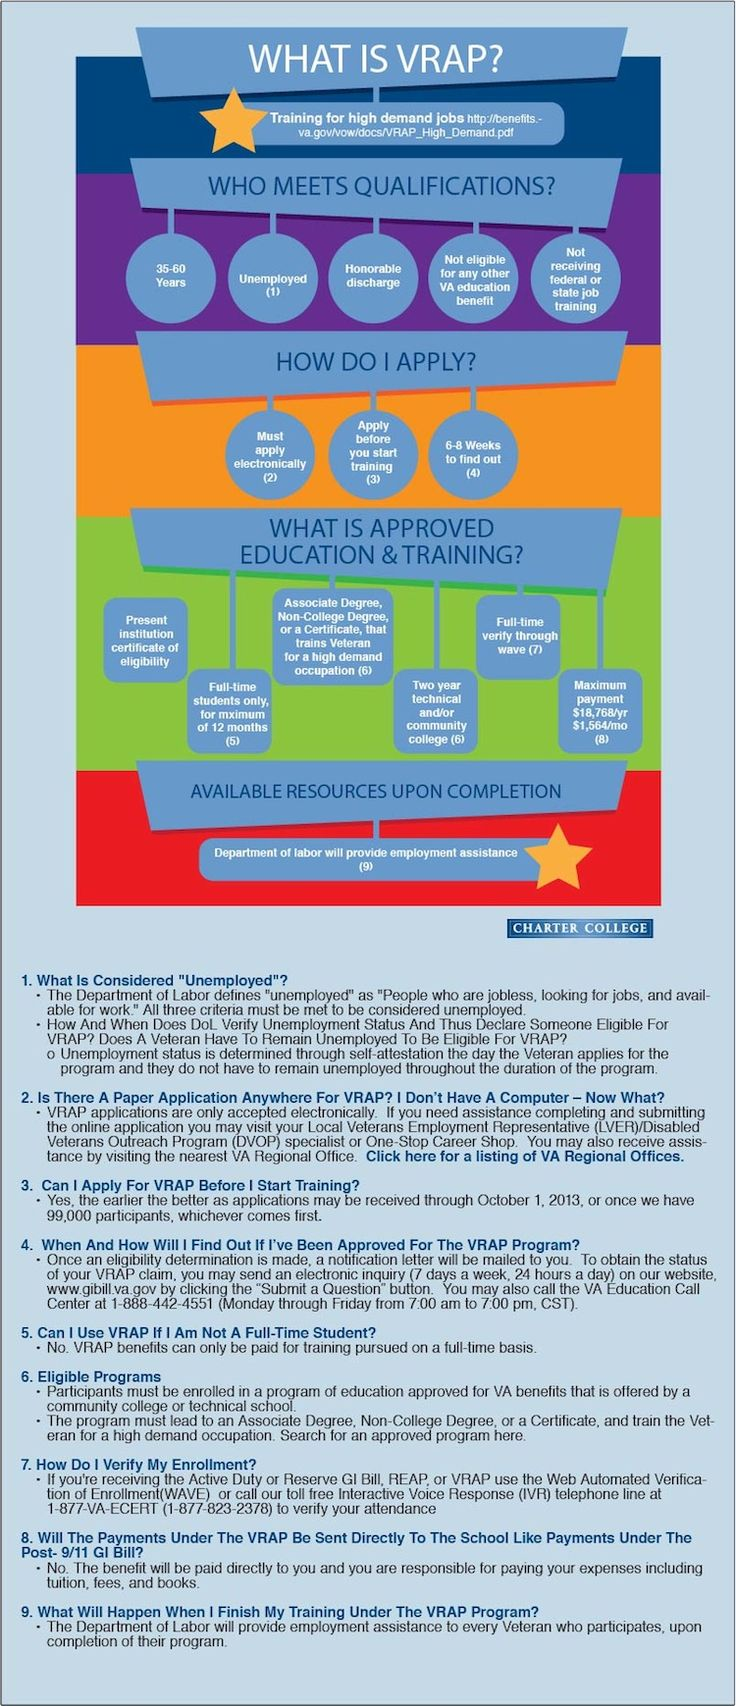 What do you need to know to fill out the Veteran's Aid and Attendance application?